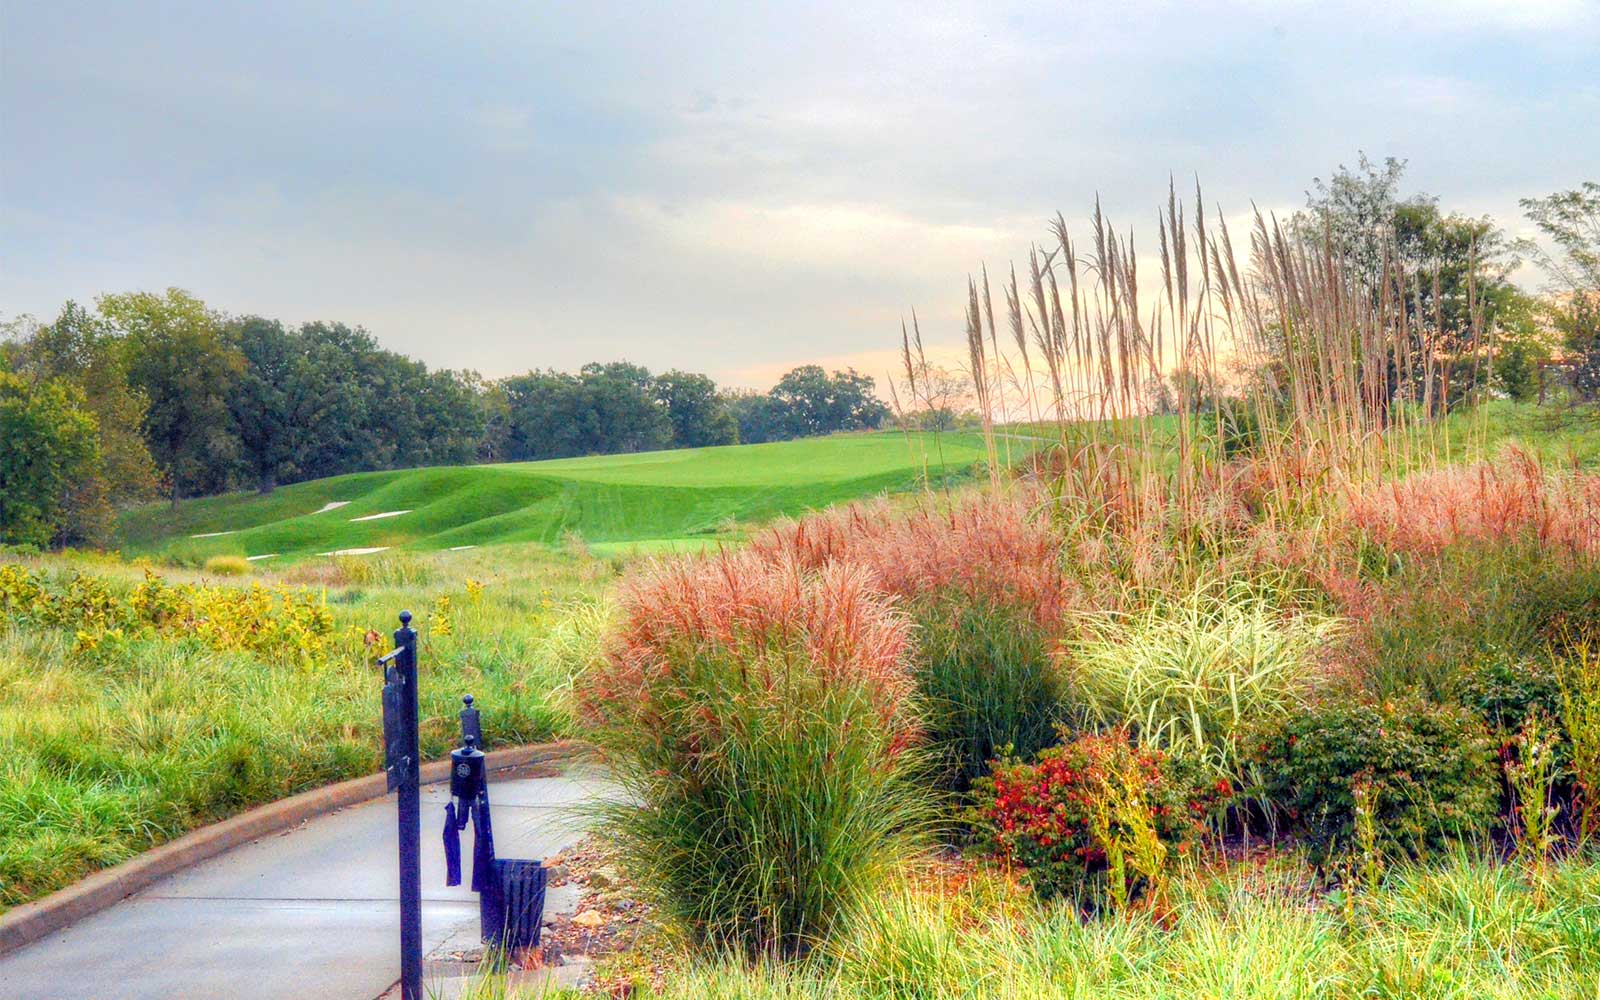 Staley Farms Golf Club, Golf Courses in Kansas City, Missouri